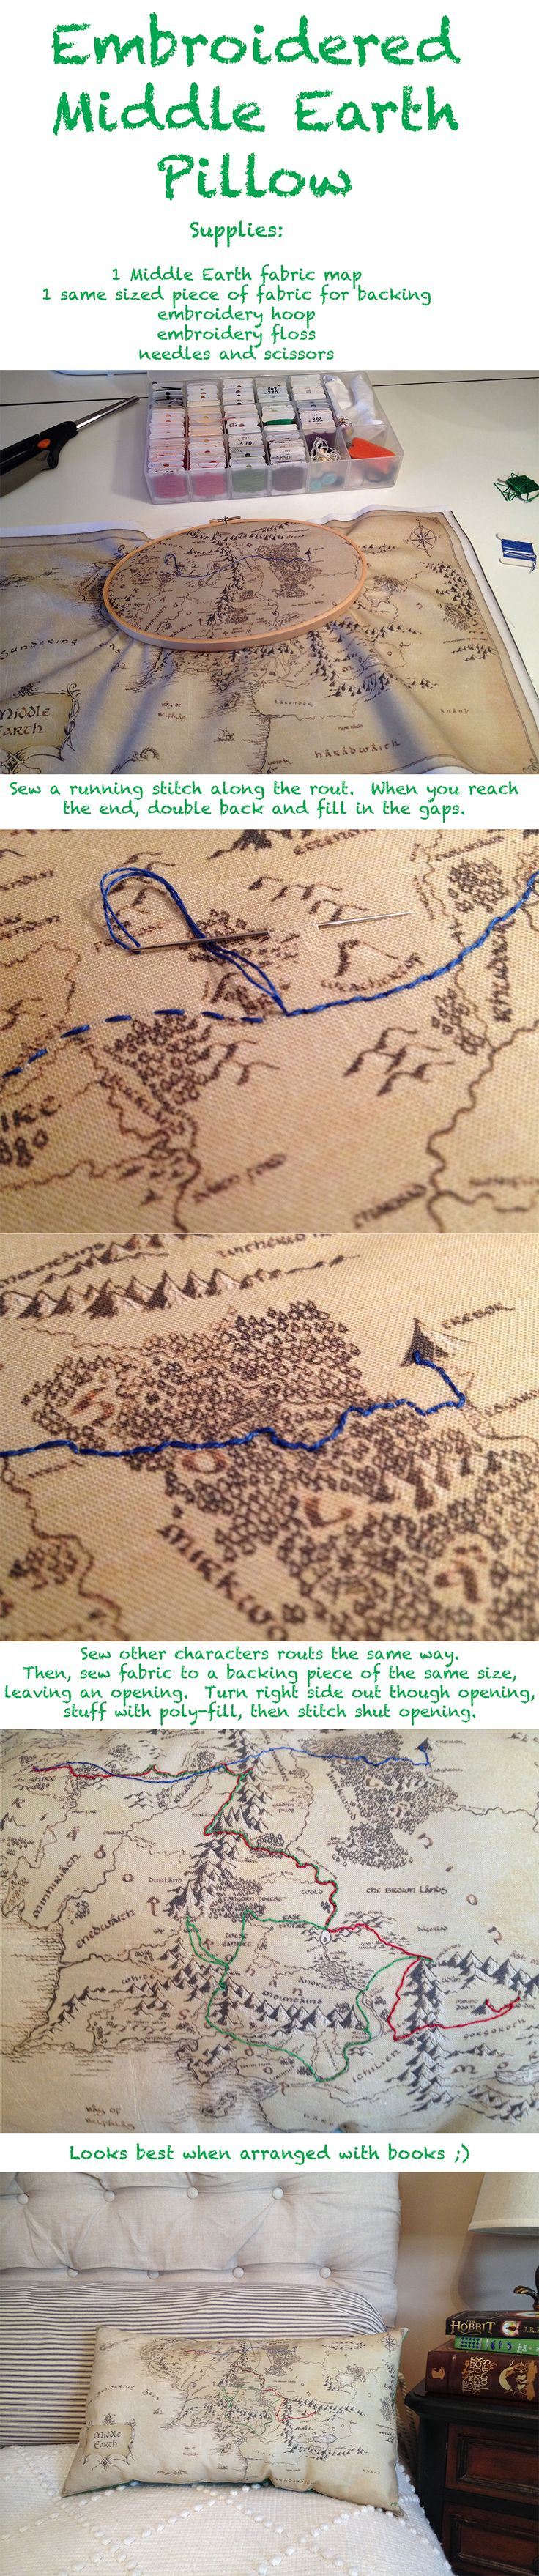 Make a Middle Earth pillow embroidered with the journeys of your favorite characters. Follow link to find the map fabric!